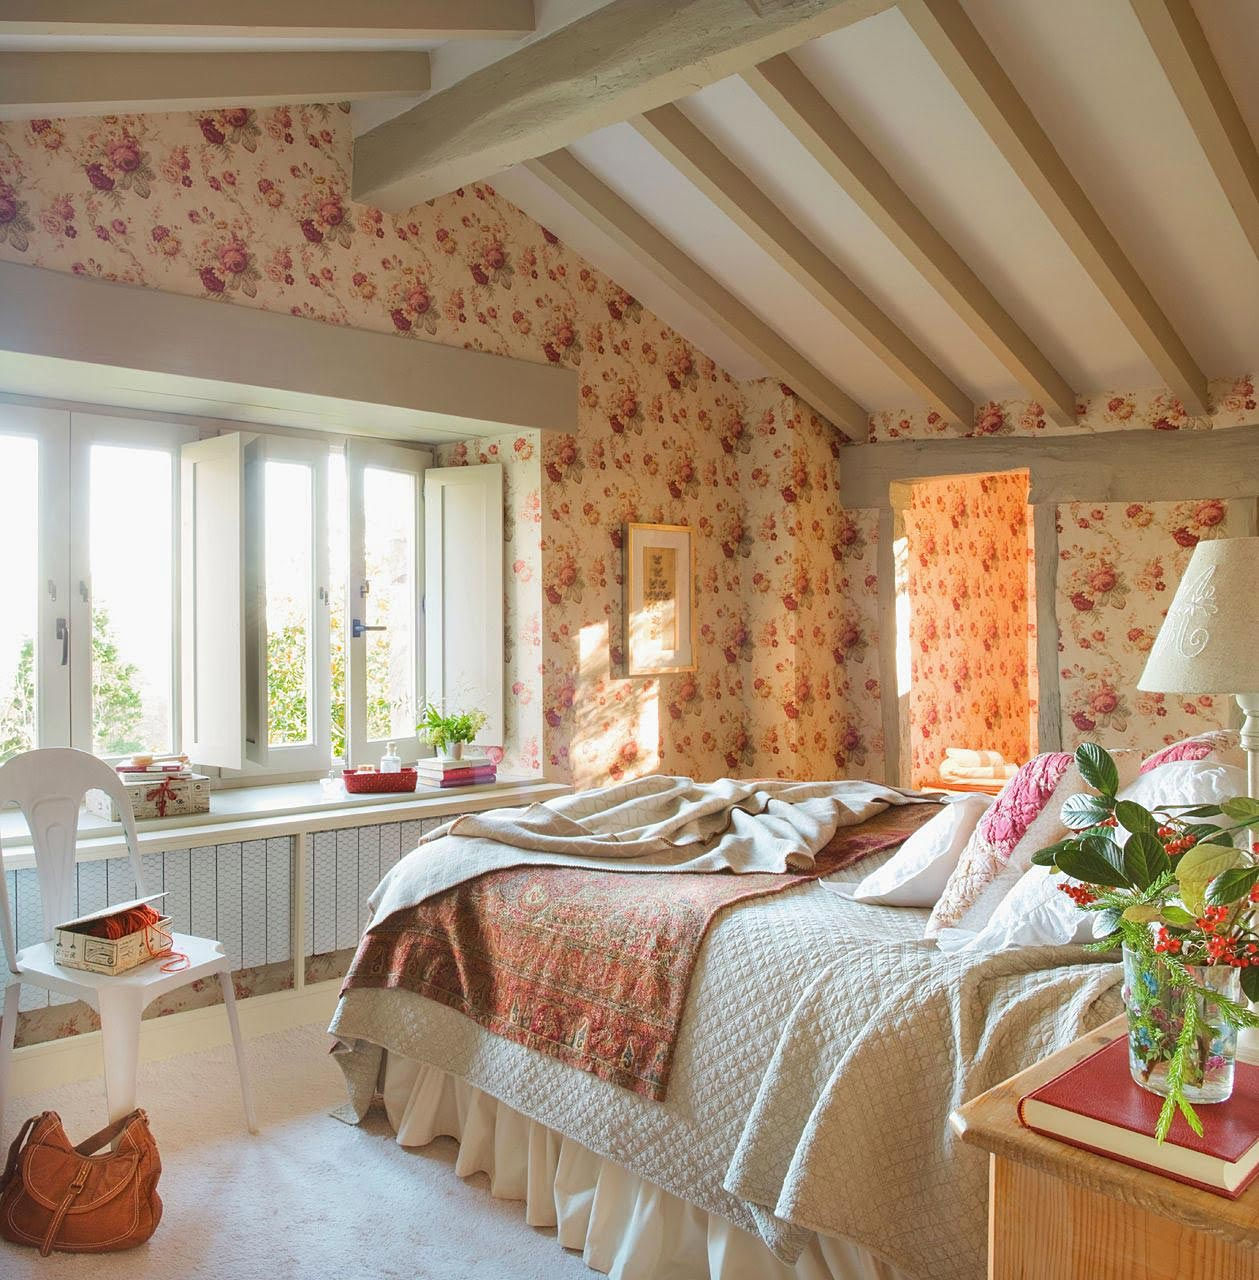 Most Popular Interior Design Styles: What's Trendy In 2020